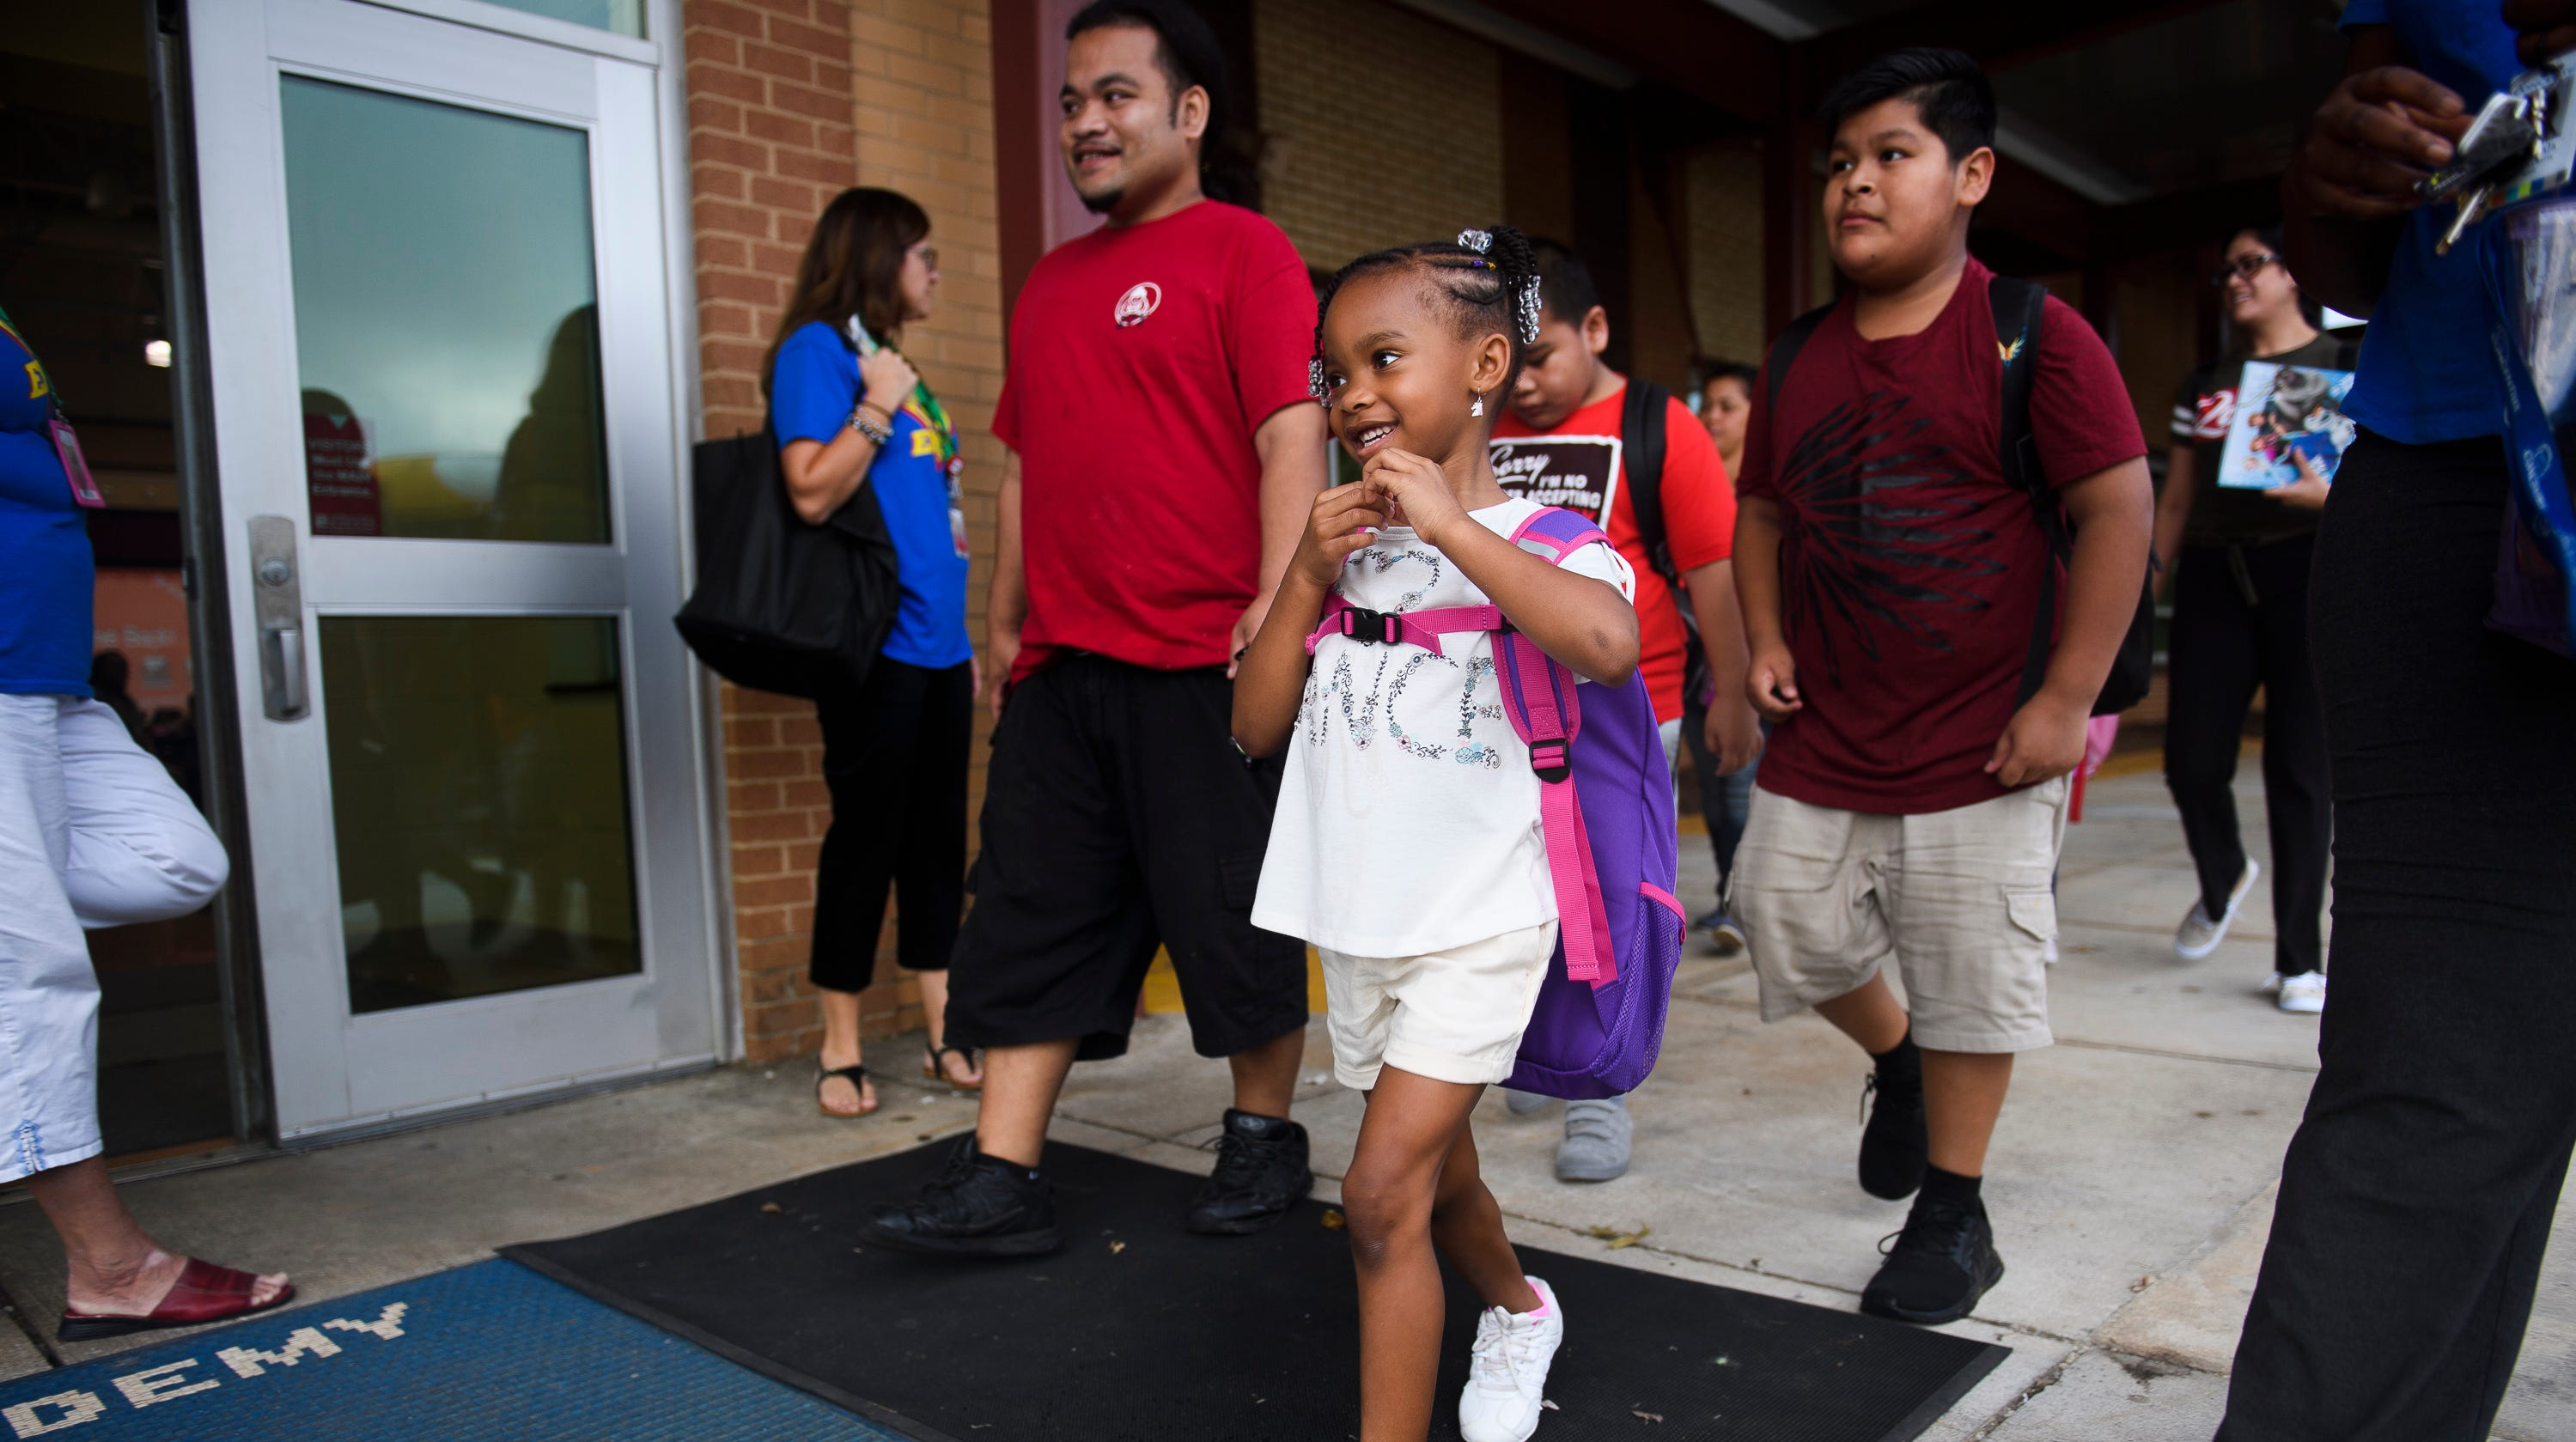 London Thompson walks to her first day of school at East North Street Academy on Monday, Aug. 20, 2018.